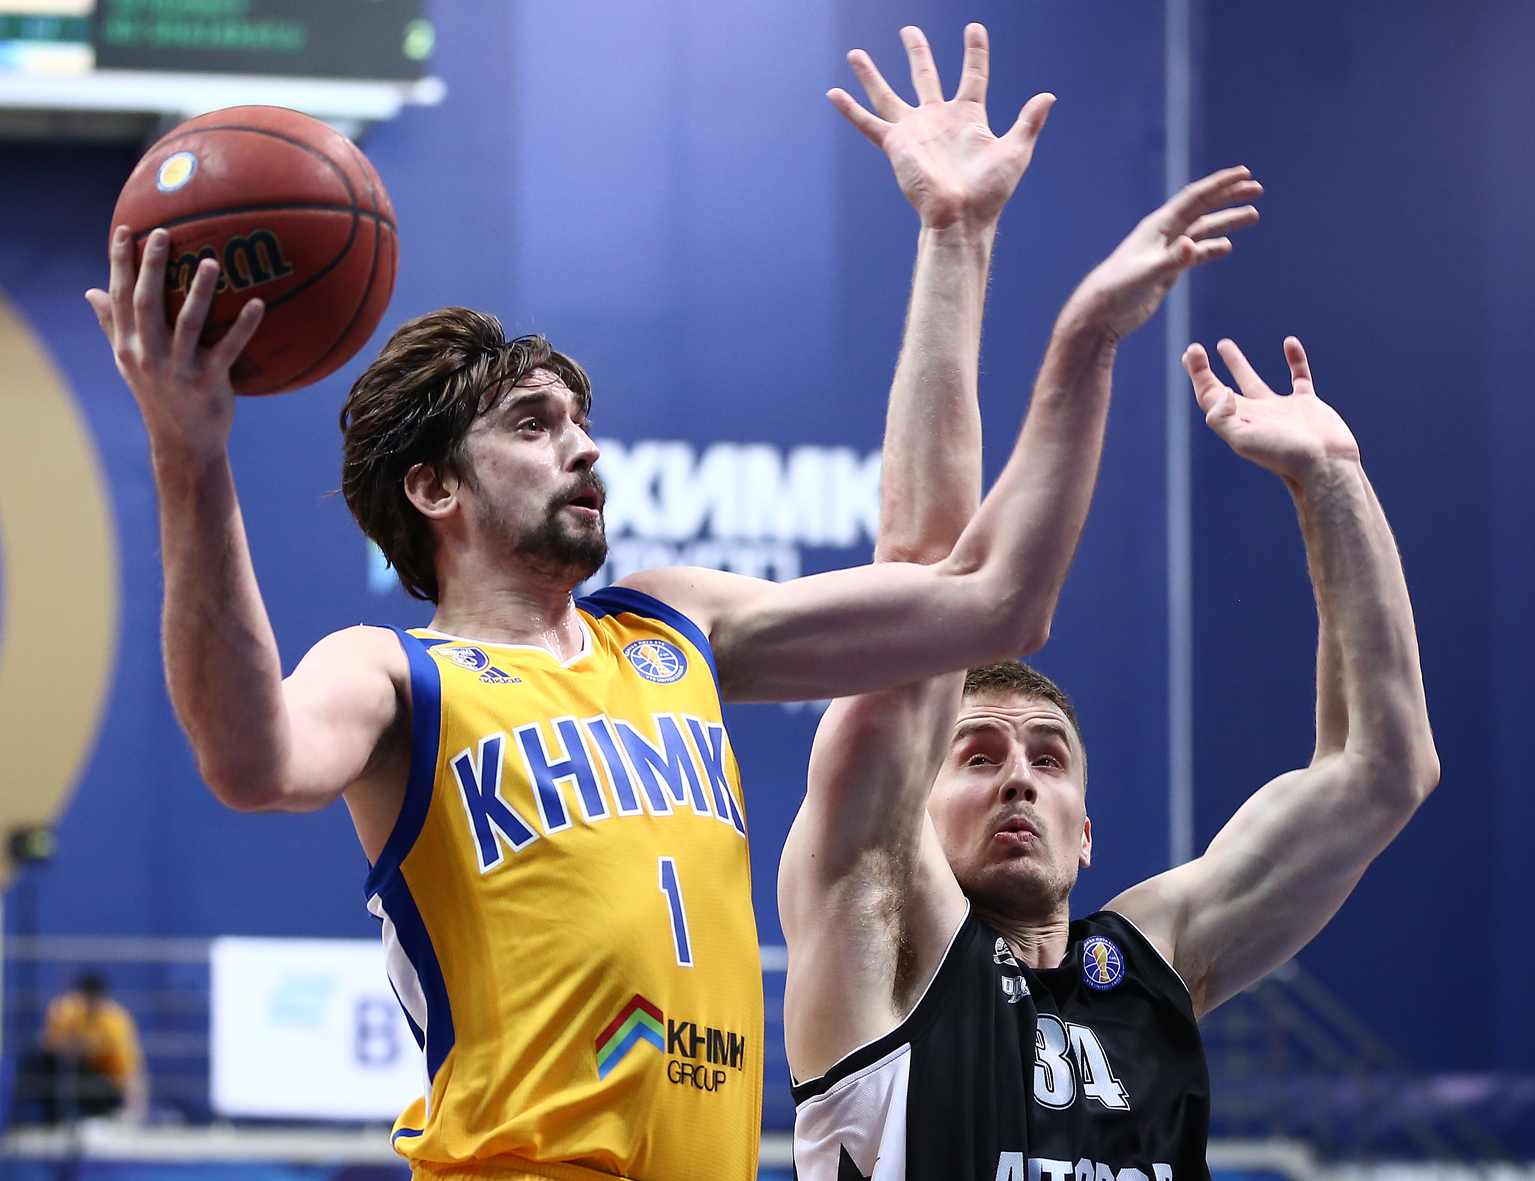 Khimki Stuns Avtodor With 4th-Quarter Surge